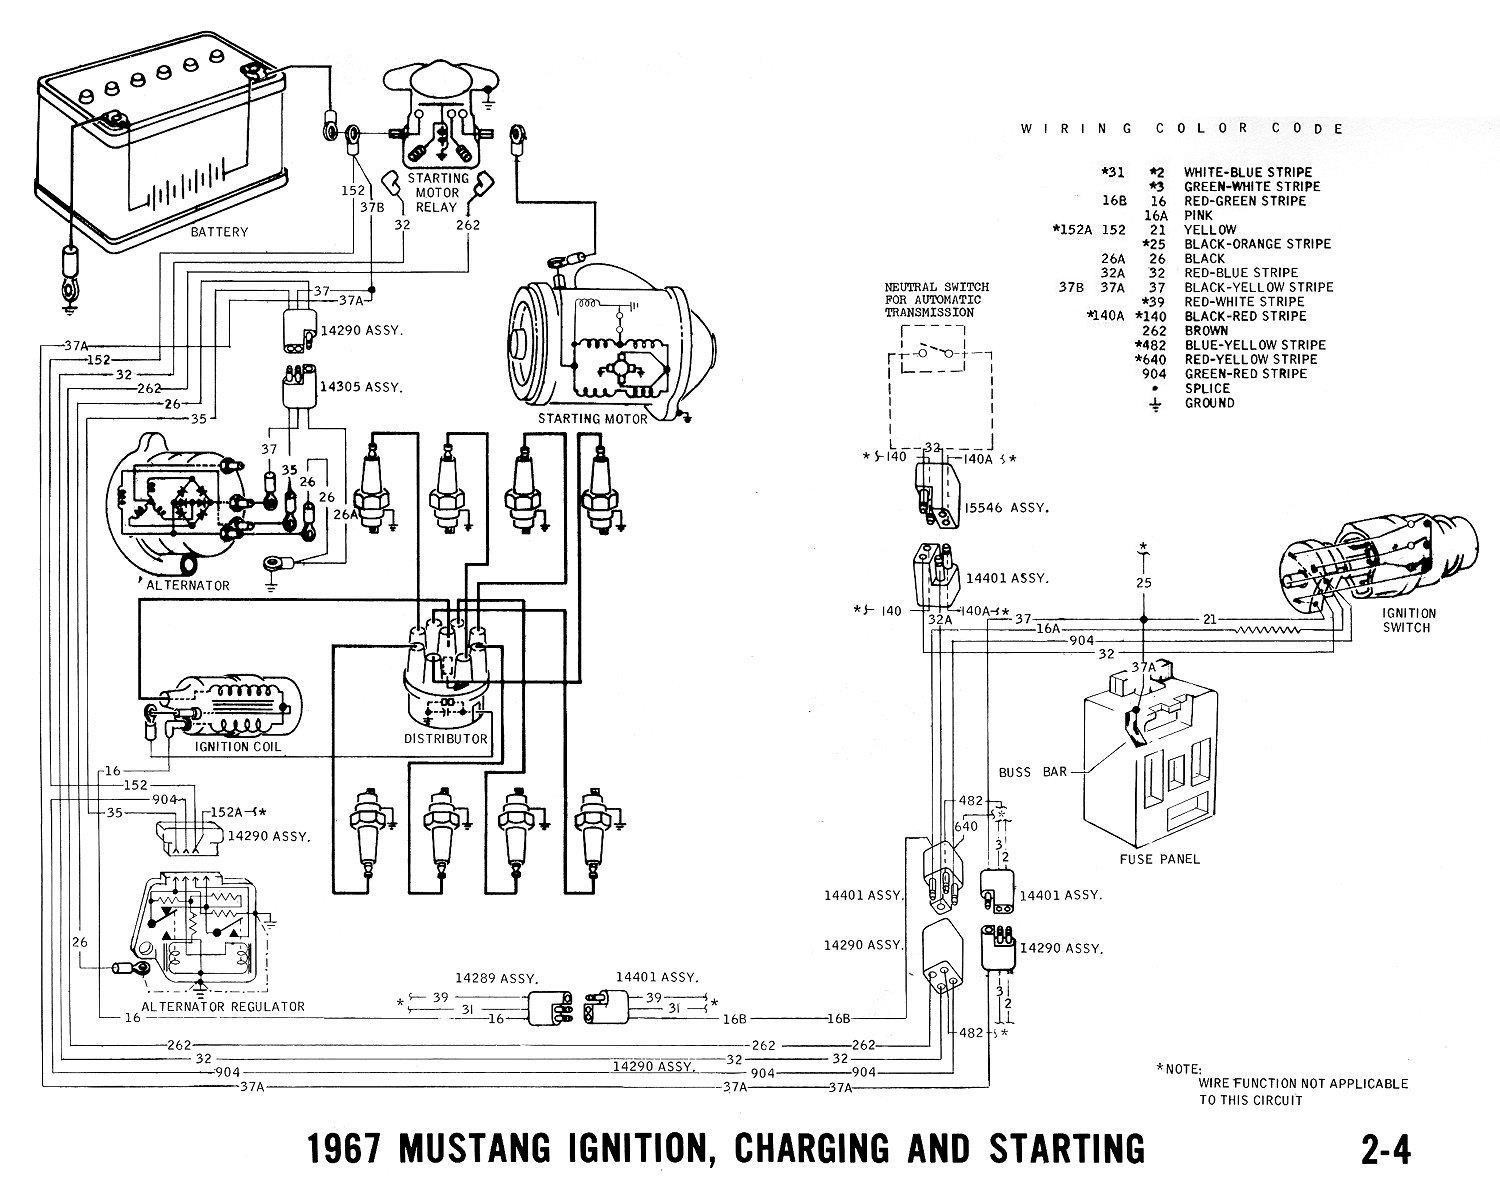 1970 Ford Mustang Starter Solenoid Wiring Diagram Smart Wire Center U2022 Rh Pulluo Co Switch